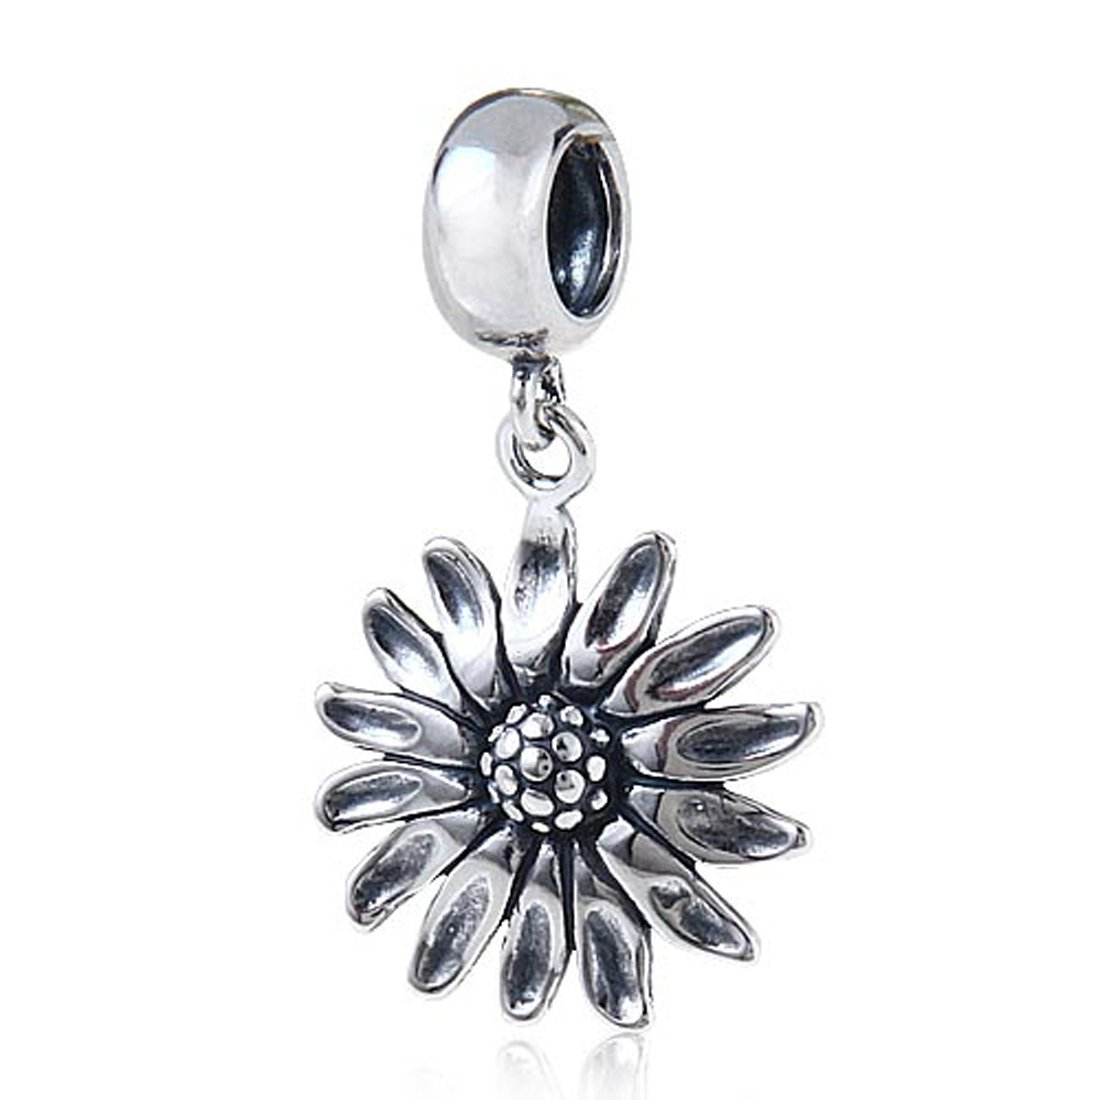 Sunflower Charm 925 Sterling Silver Lucky Flower Charm Birthday Charm Bead for Pandora Charms Bracelets Or Necklace Pendant